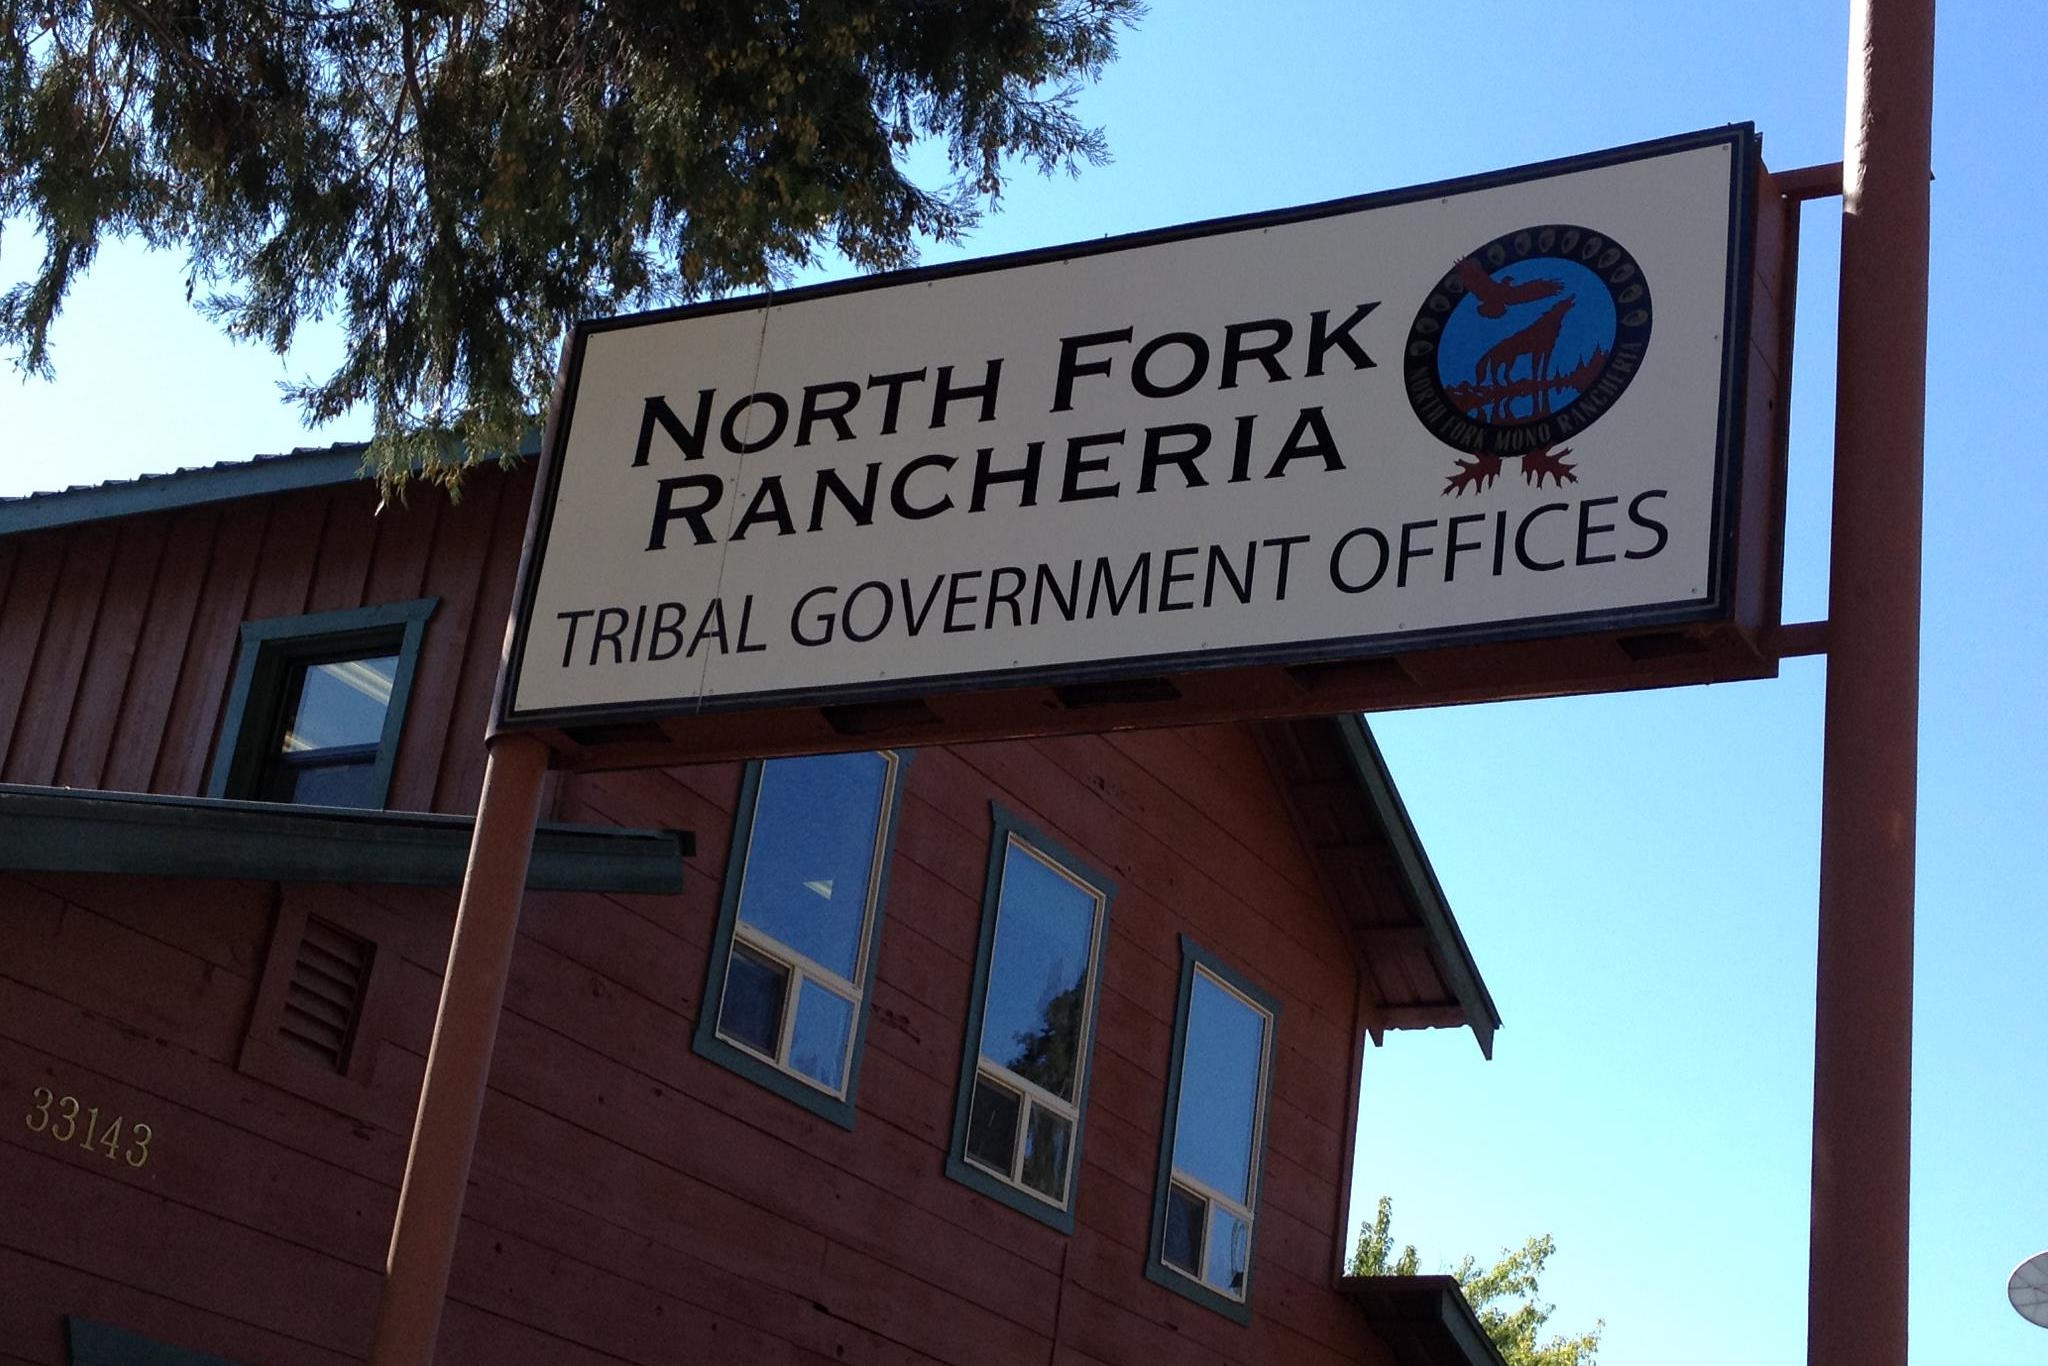 North Fork Rancheria faces fight as casino foes refuse to give up